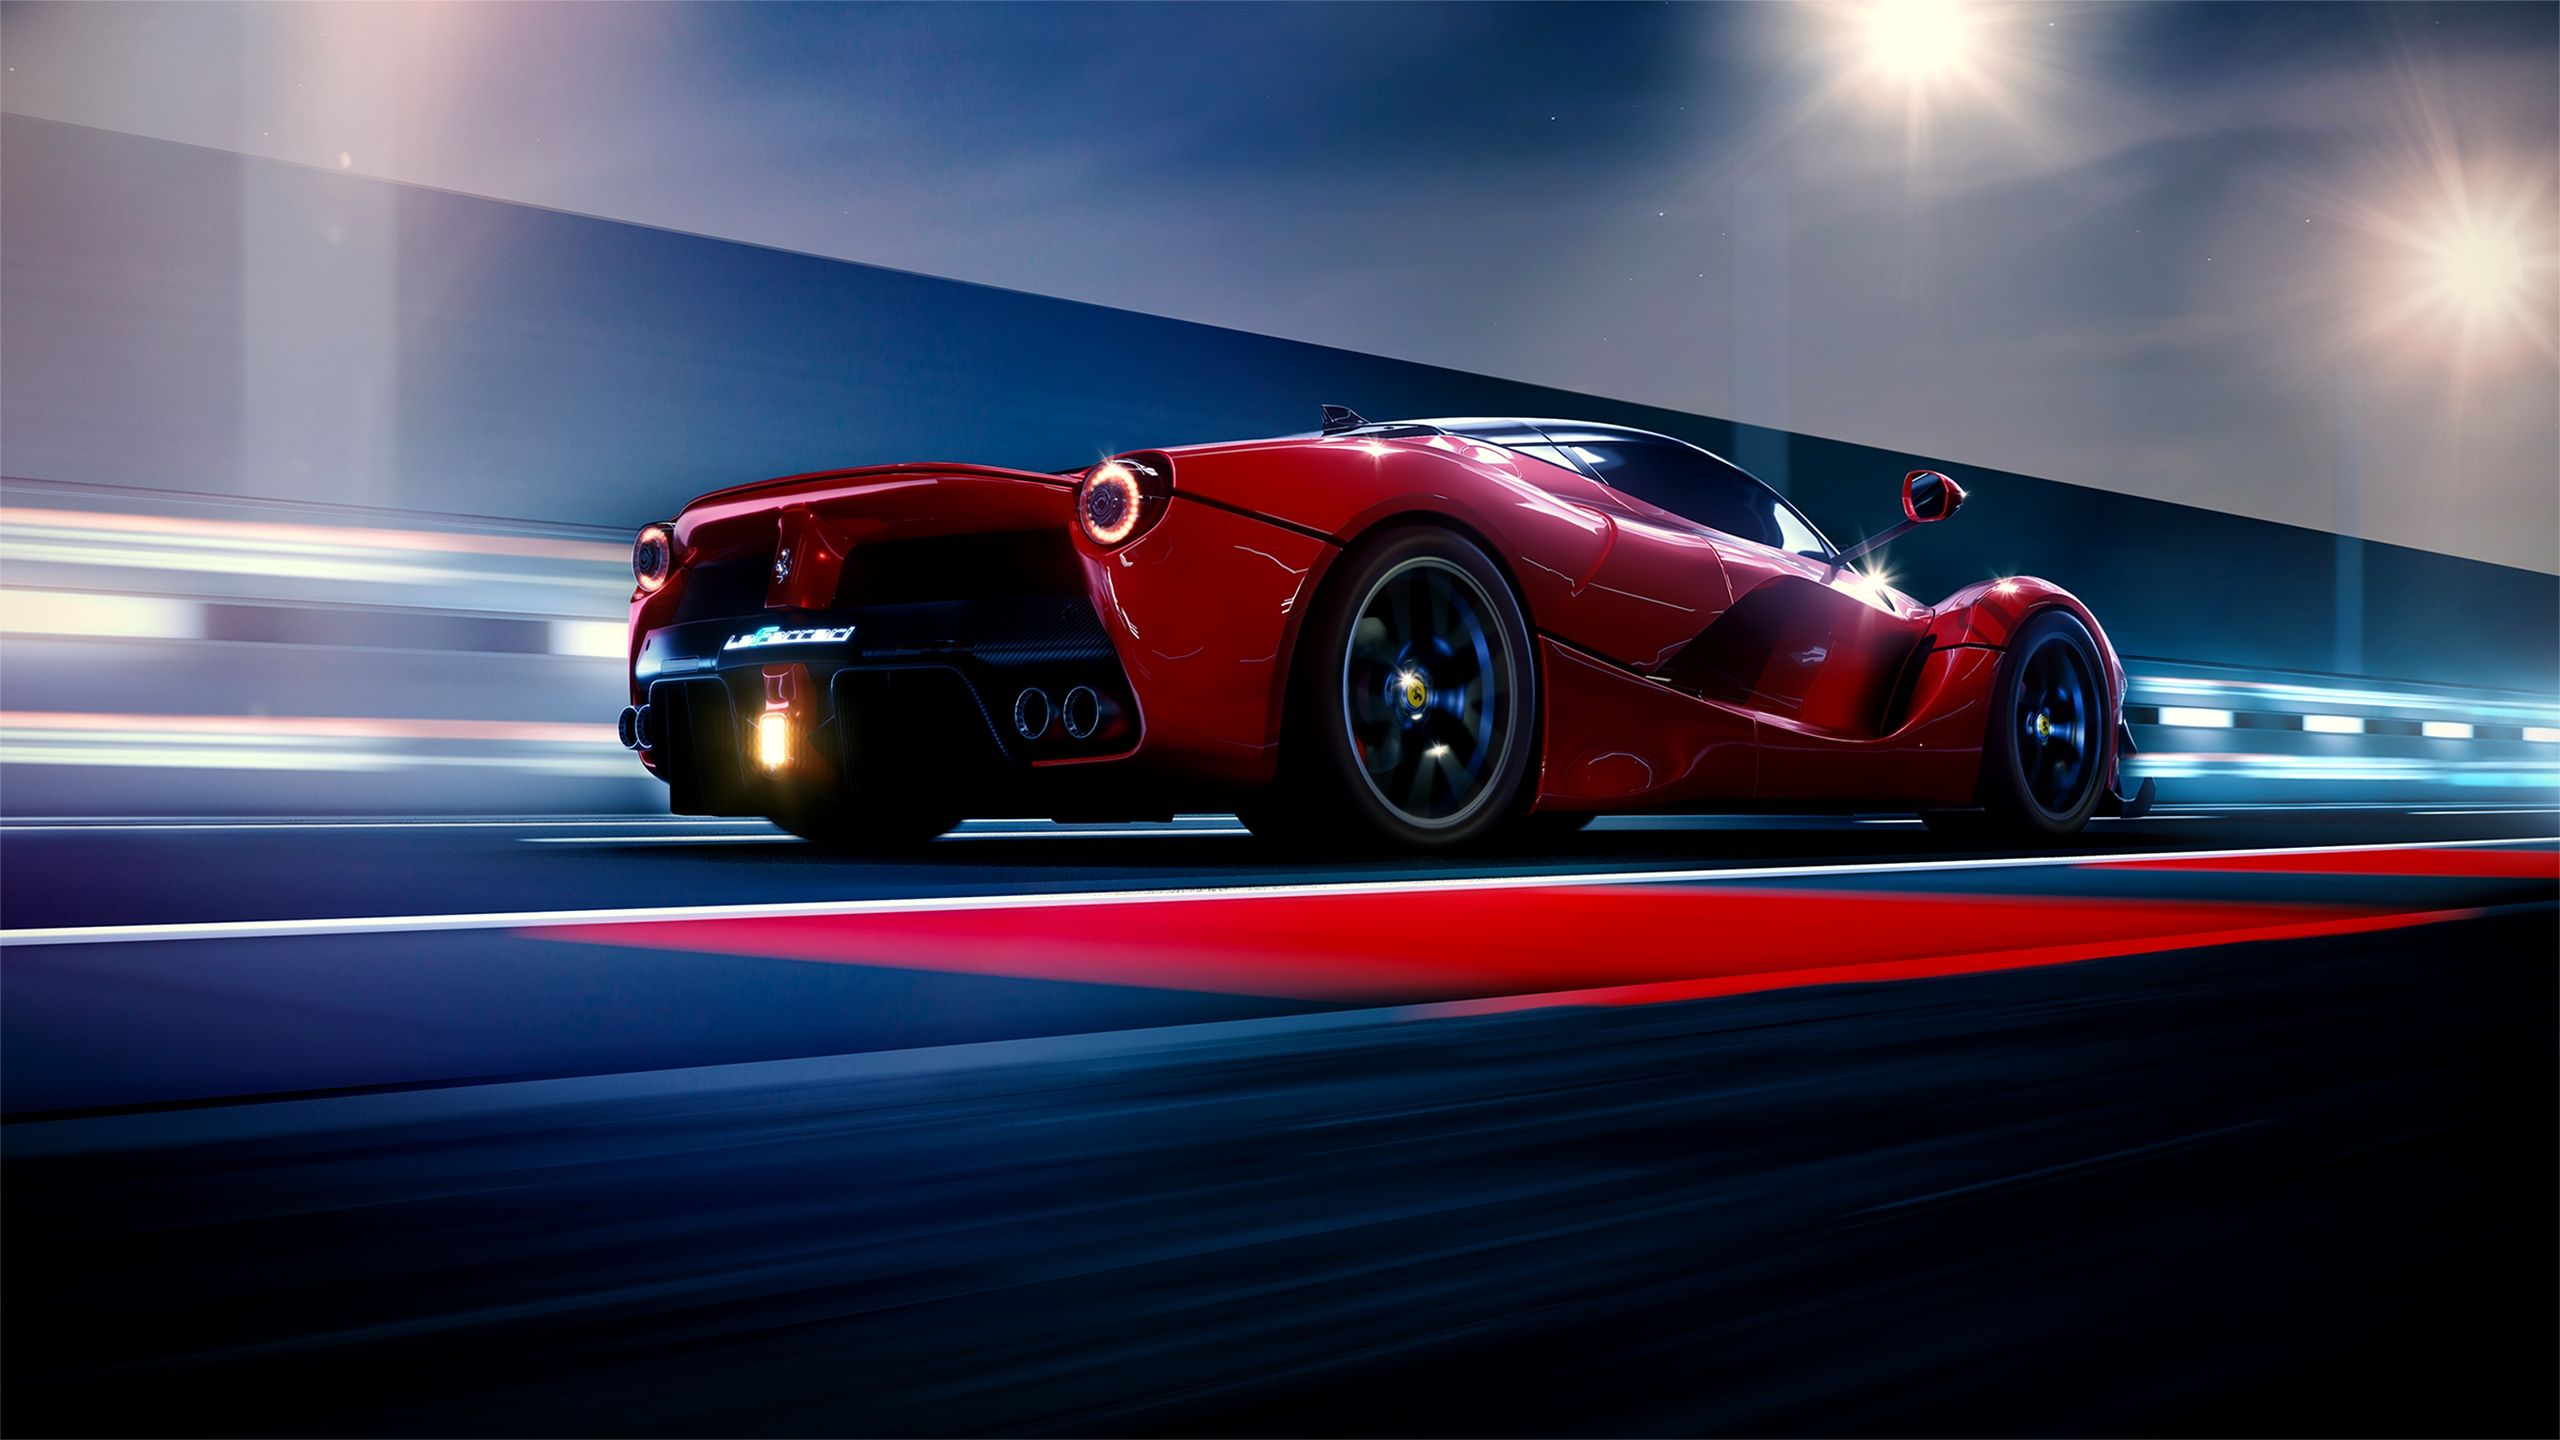 Laferrari Wallpaper 4k Iphone Gallery Di 2020